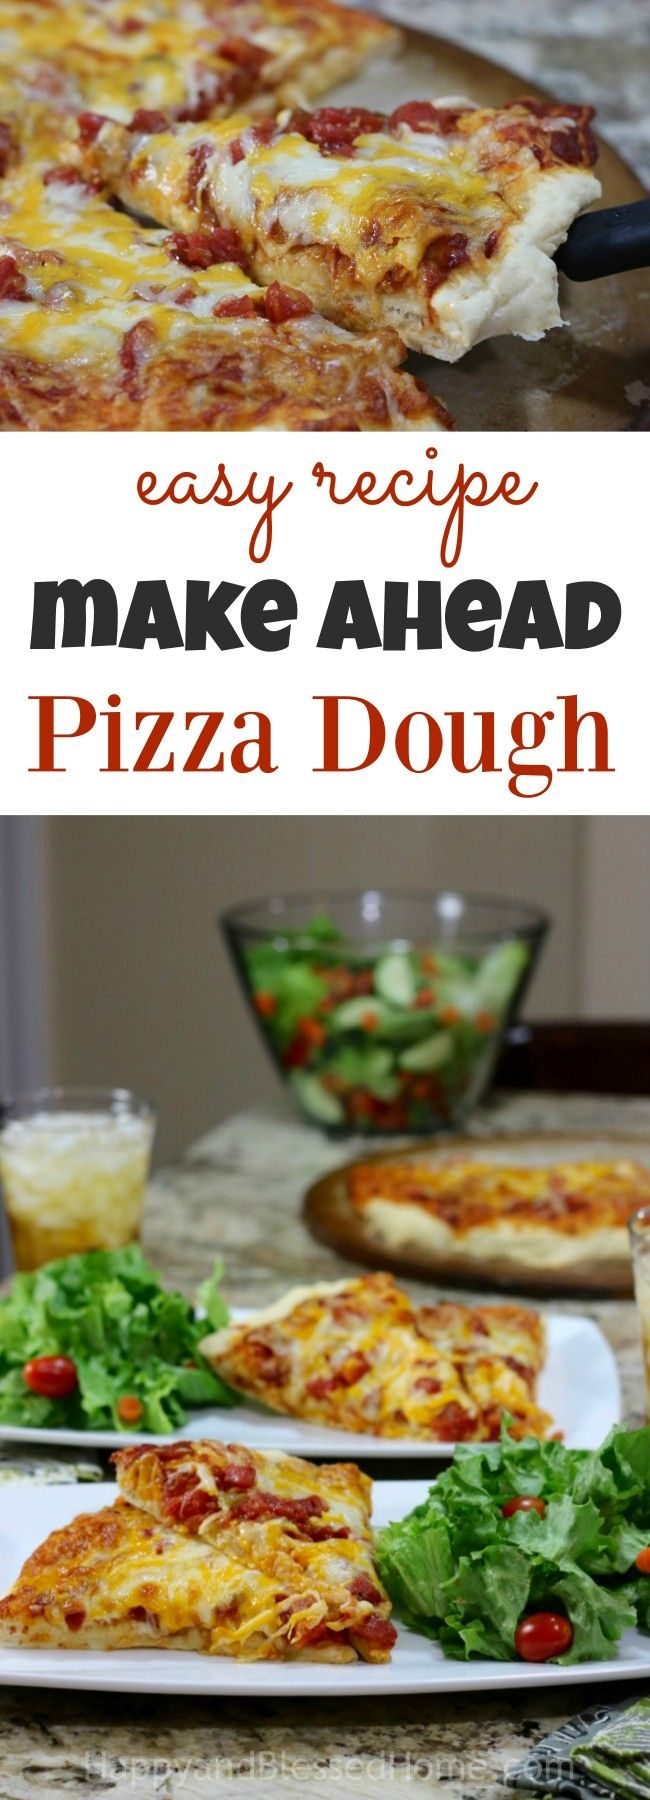 Party coming up ? Make this easy recipe for make ahead pizza dough! This recipe is so versatile. You can make calzones, stuffed pockets, soft pretzels, and breadsticks with this. I love how she puts it in the fridge a day or so before a party. I can just see this twisted like a breadstick and dipped in marinara! YUM!